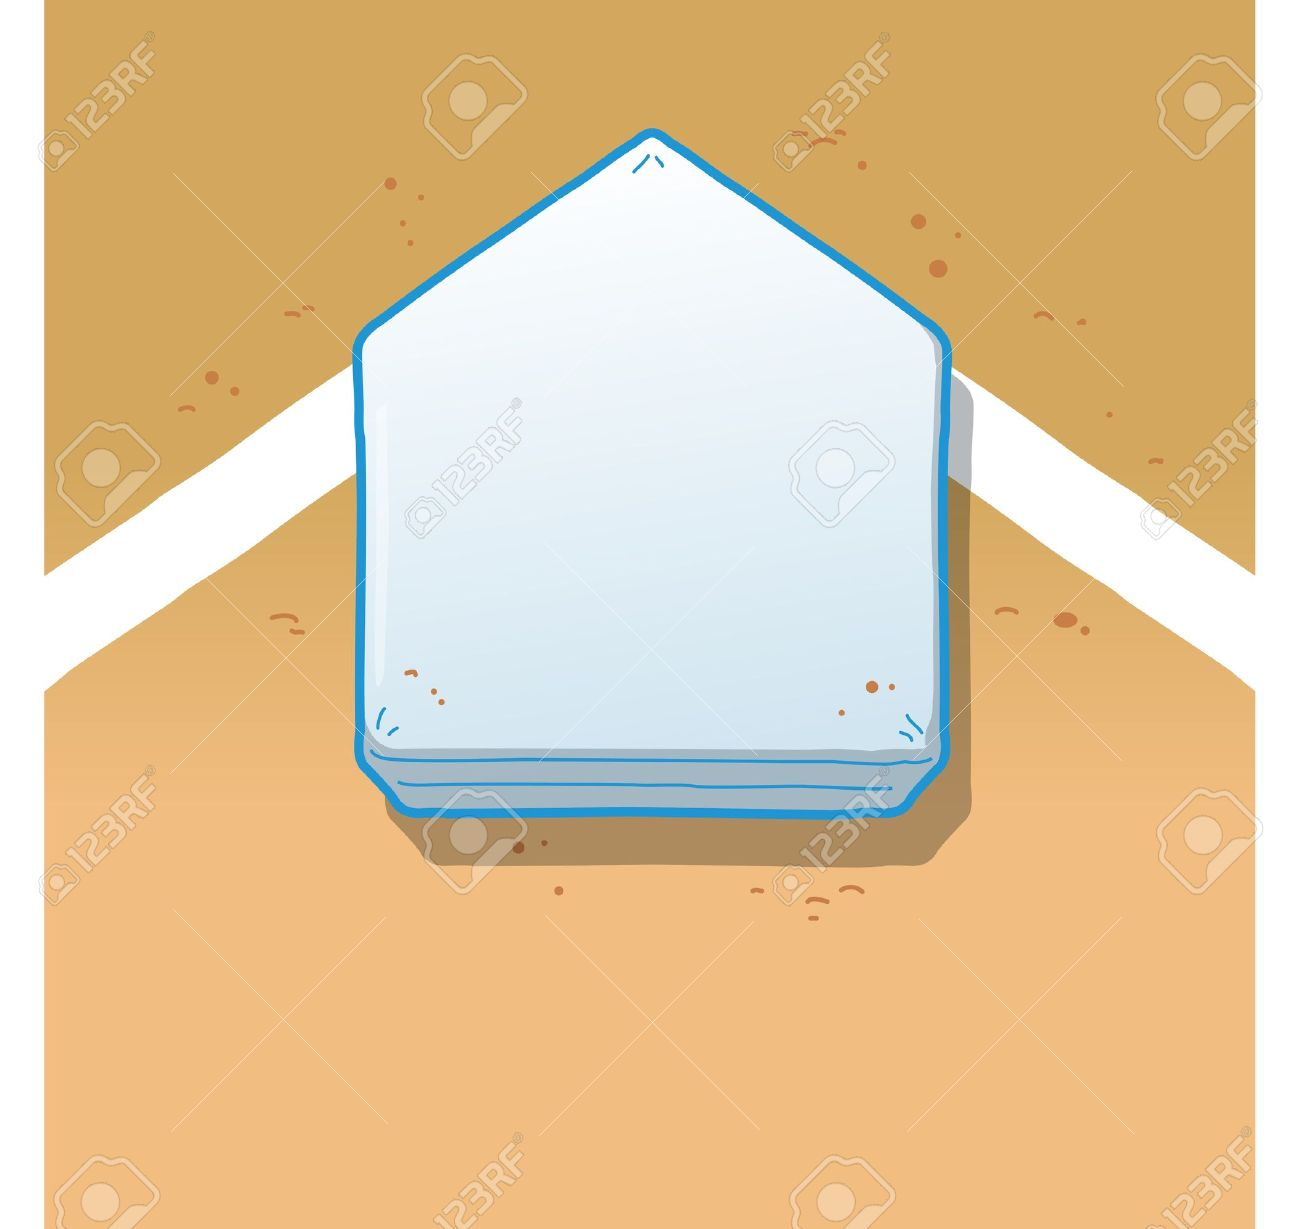 Overhead View of Home Plate on a Baseball Field Stock Vector - 20686756